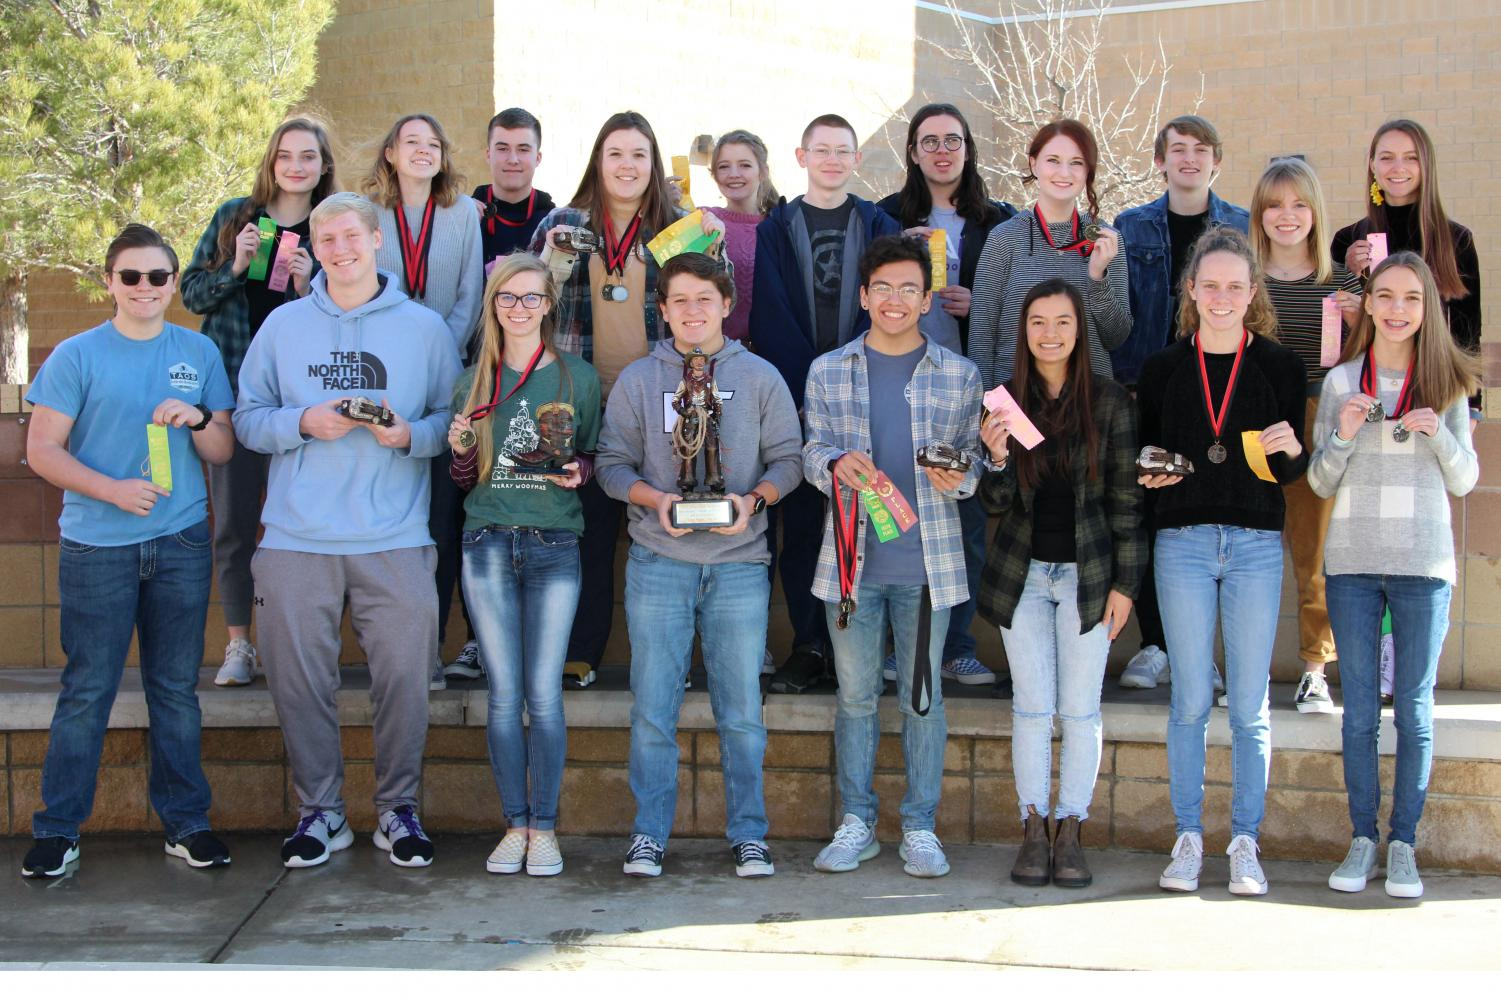 The UIL team consisting of (left to right) Brooklyn Pernell, Claire Meyer, Blake Loria, Cally Lytal, Kodi Hicks, Michael Branton, Josiah Kinsky, Brooklyn Cornelsen, Luke Bruce, Charlie Alexander, Aleah Appel, Brett Rose, Cooper Smith, Macy McClish, Isaac Kendrick, Julian Sewell, Sam Fernandez, Madison Hill and Hannah Backus competed in various UIL events including science, math, social studies, computer science, journalism and literary criticism.